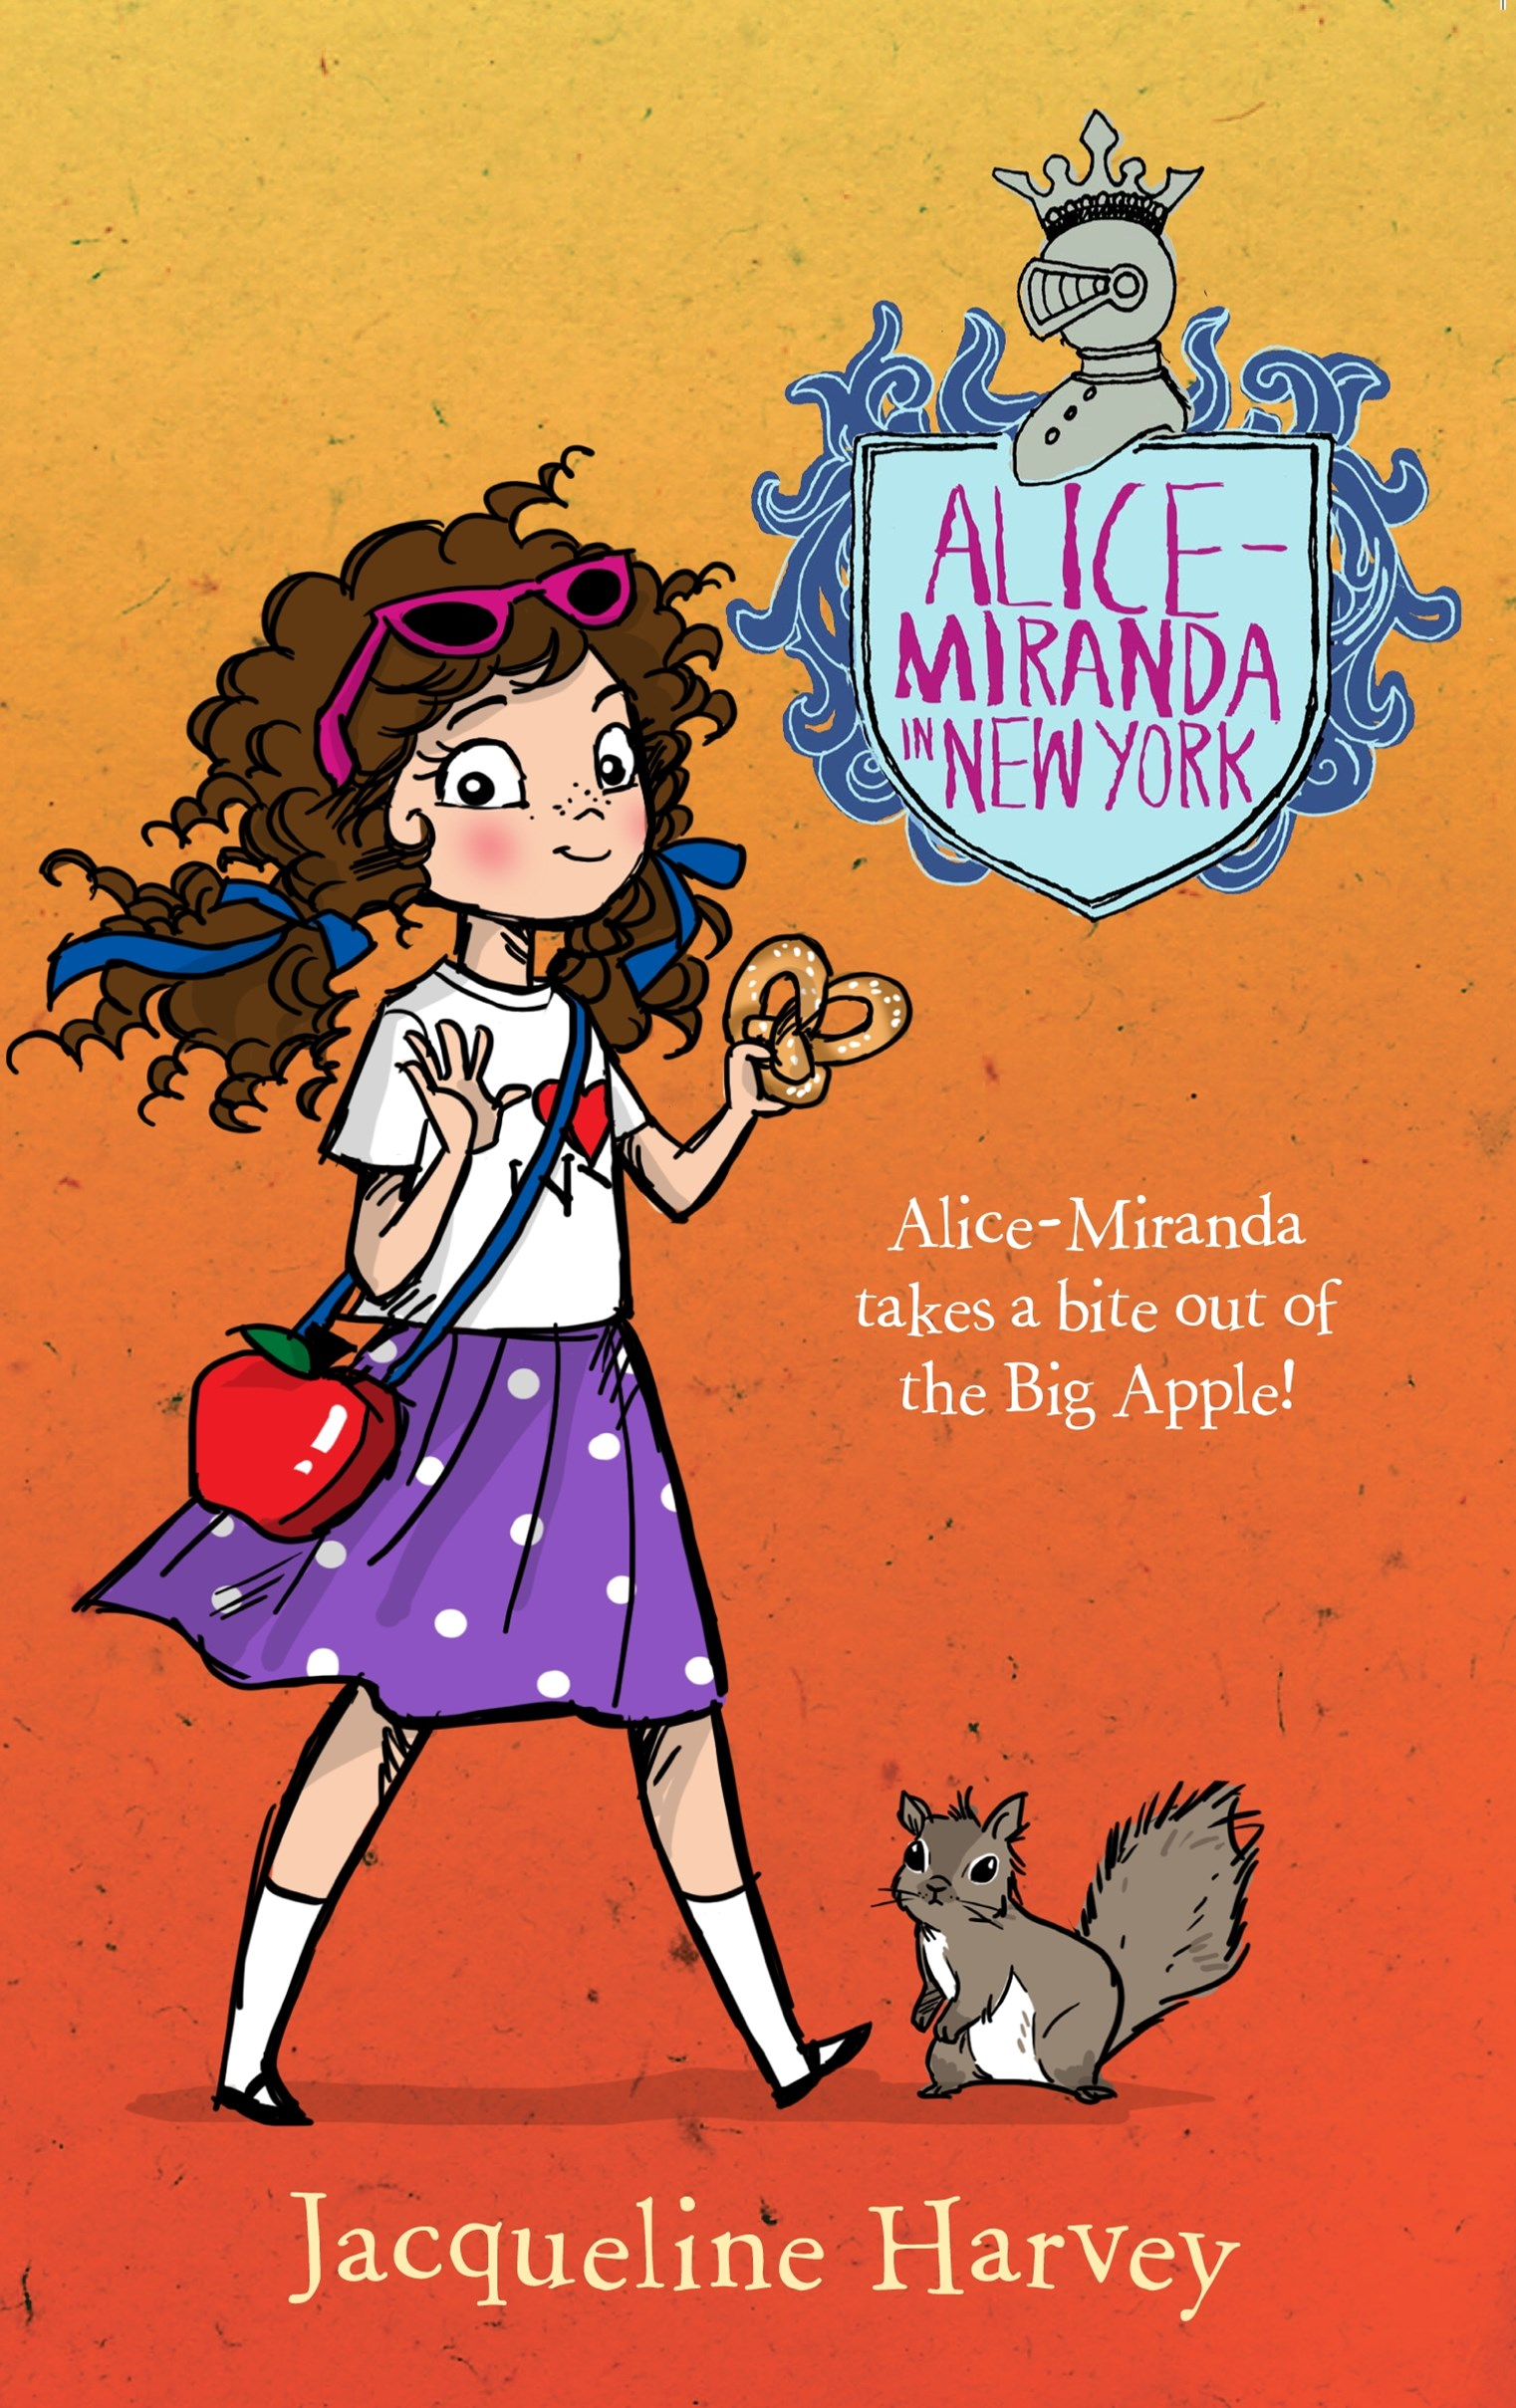 Alice-Miranda in New York (Alice-Miranda Book 5)